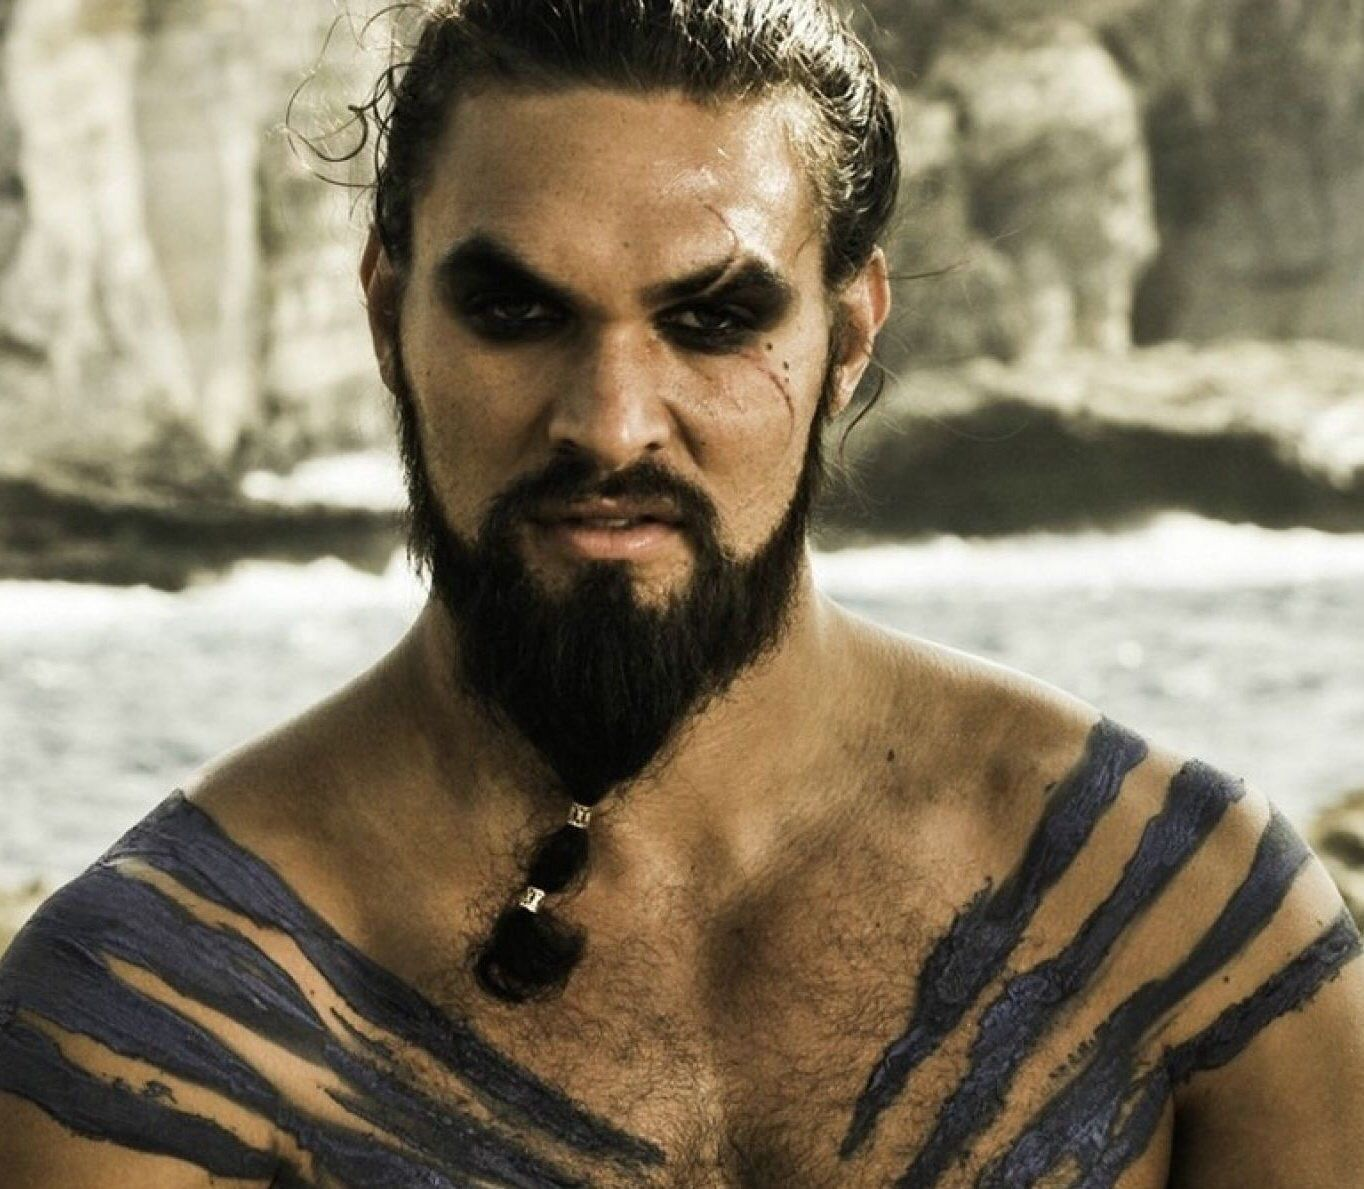 Today Is Jason Momoa (Khal Drogo) 37th Birthday August 01